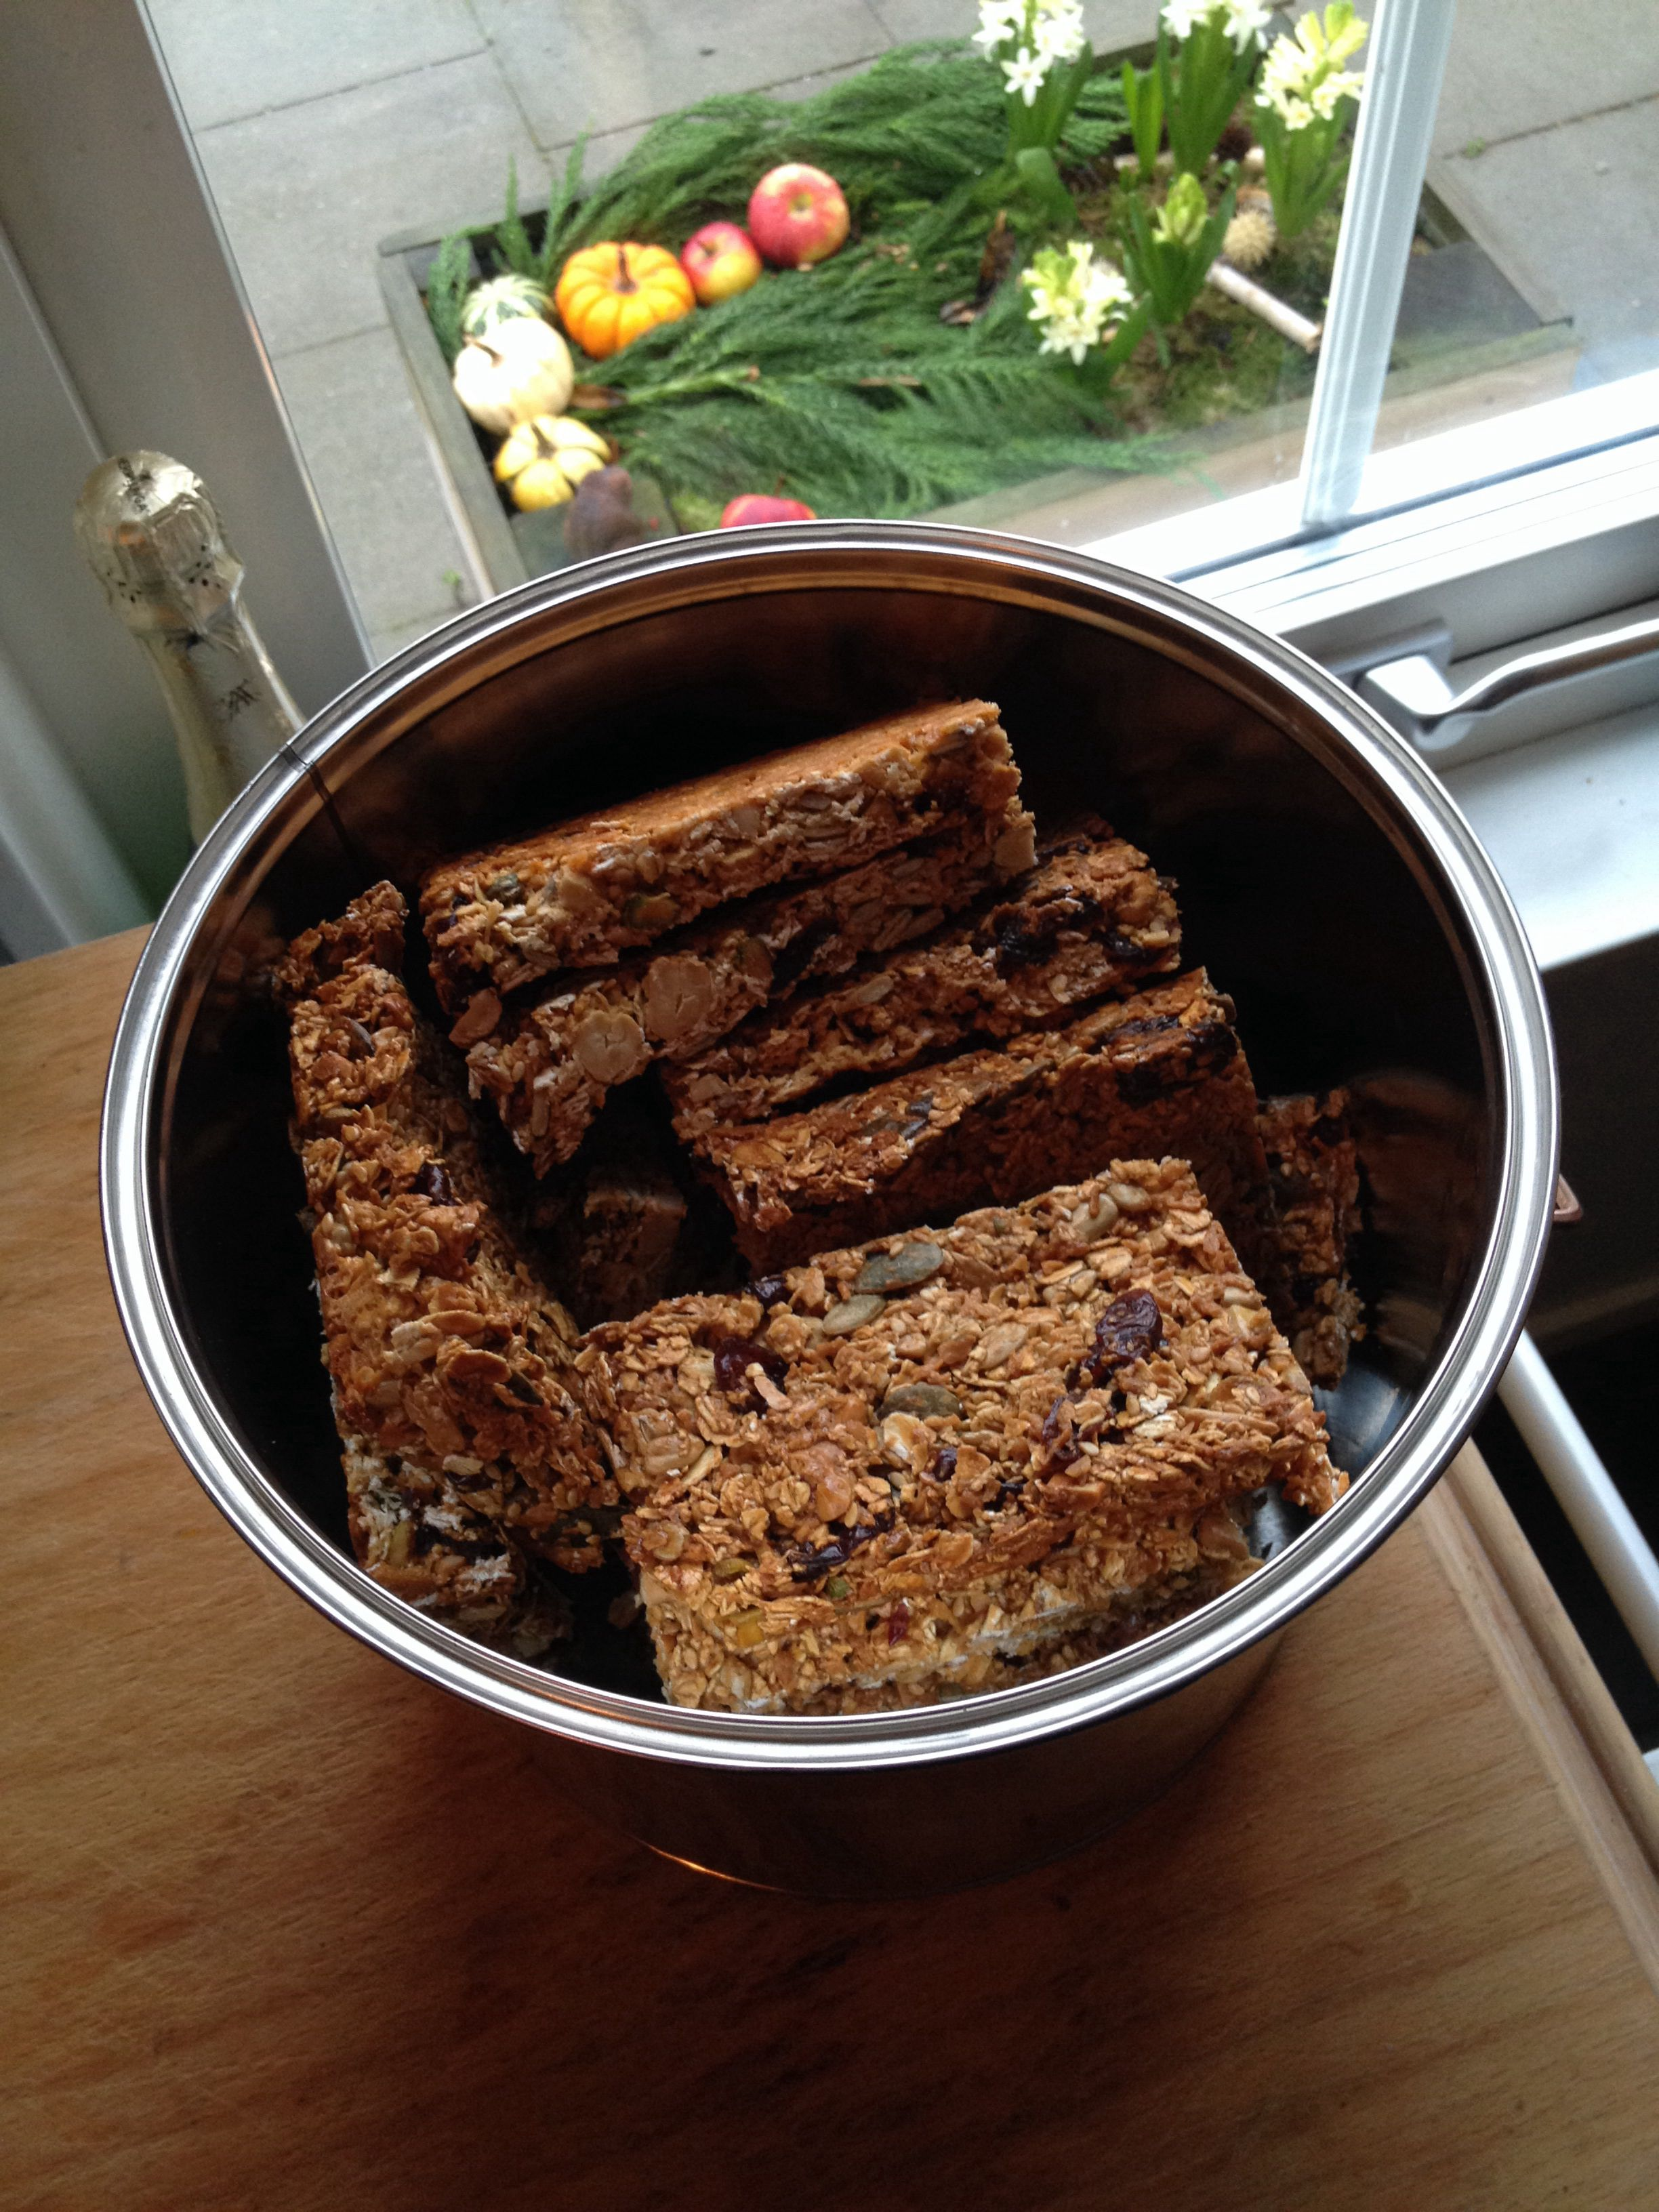 Breakfast Bars From Nigella Express I Used To Make A Batch Of These Every Week But Fell Out If The Habit So Good And Eas Food Favorite Recipes Breakfast Bars